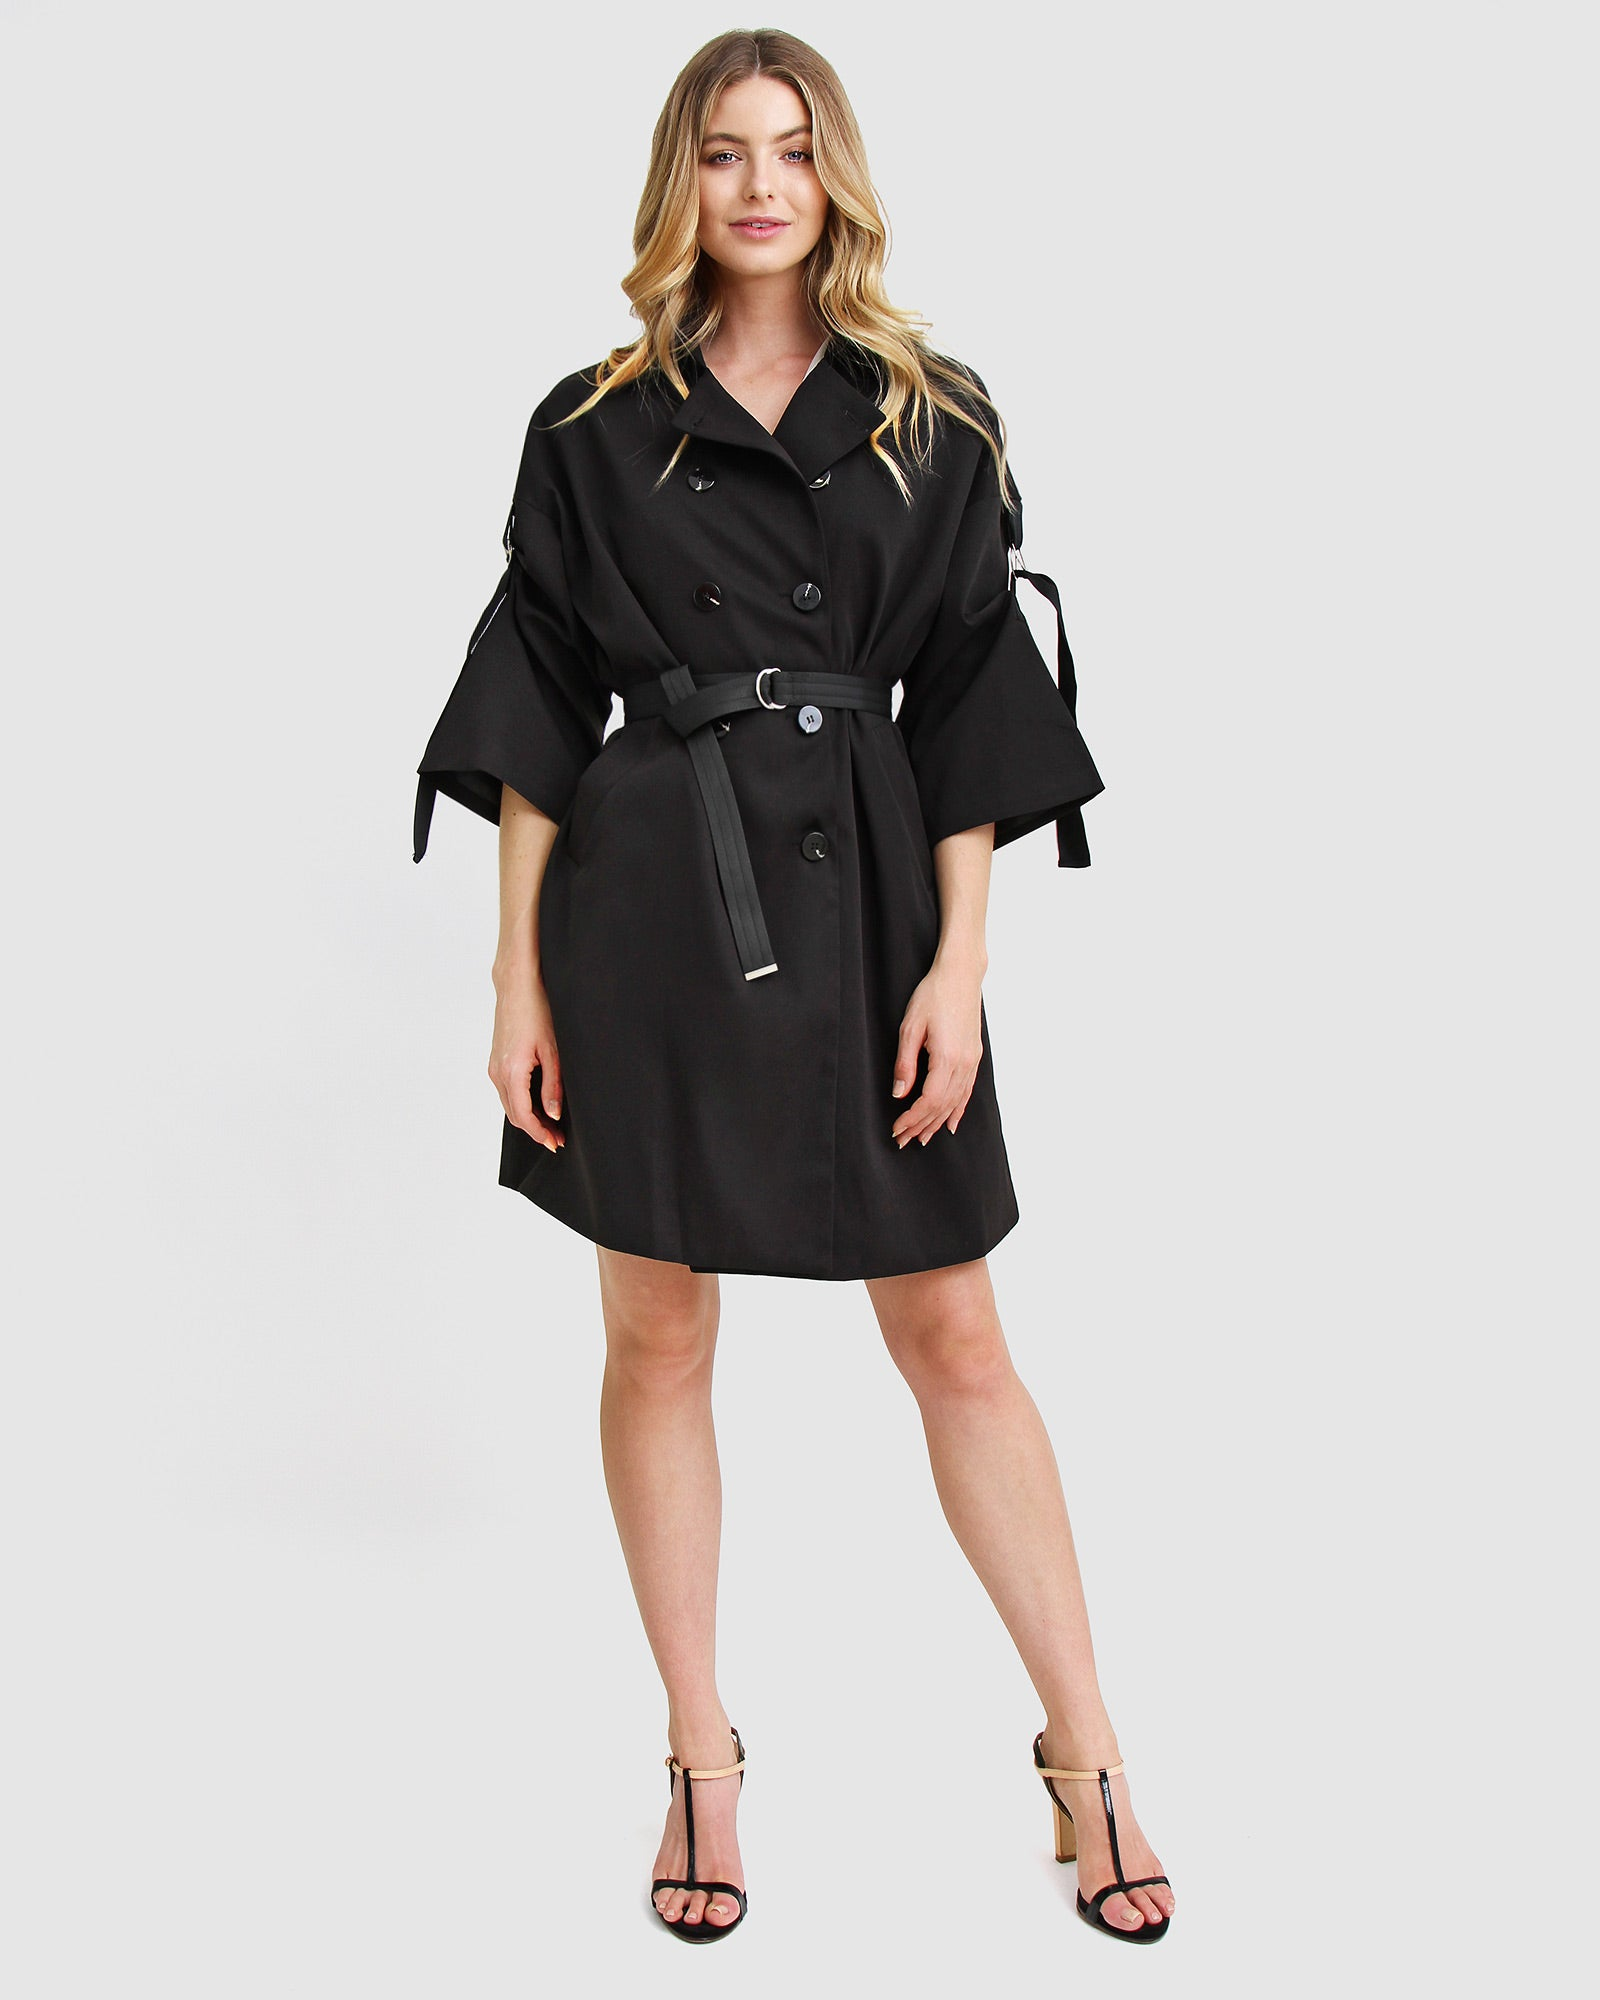 Russian Romance Oversized Trench Coat - Black